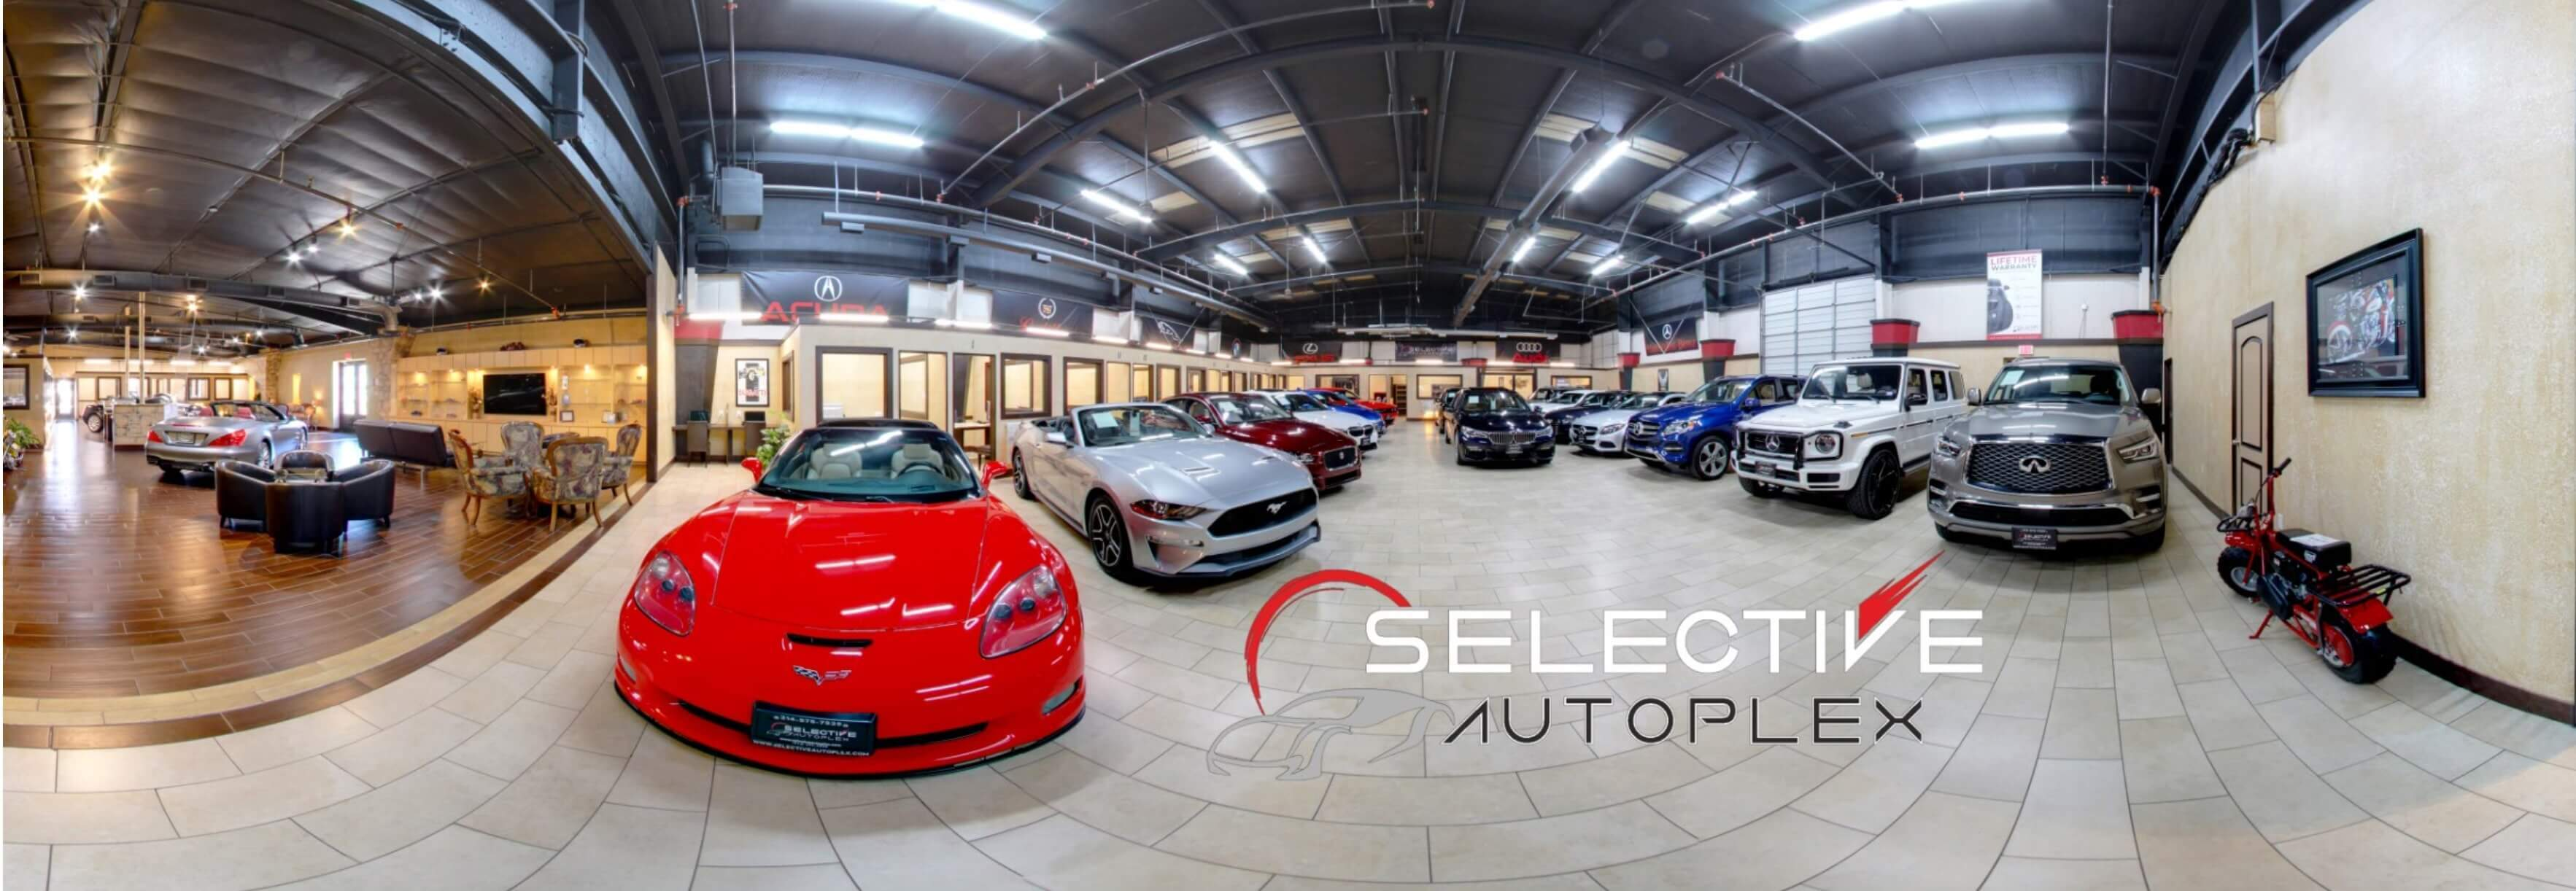 Showroom with Logo